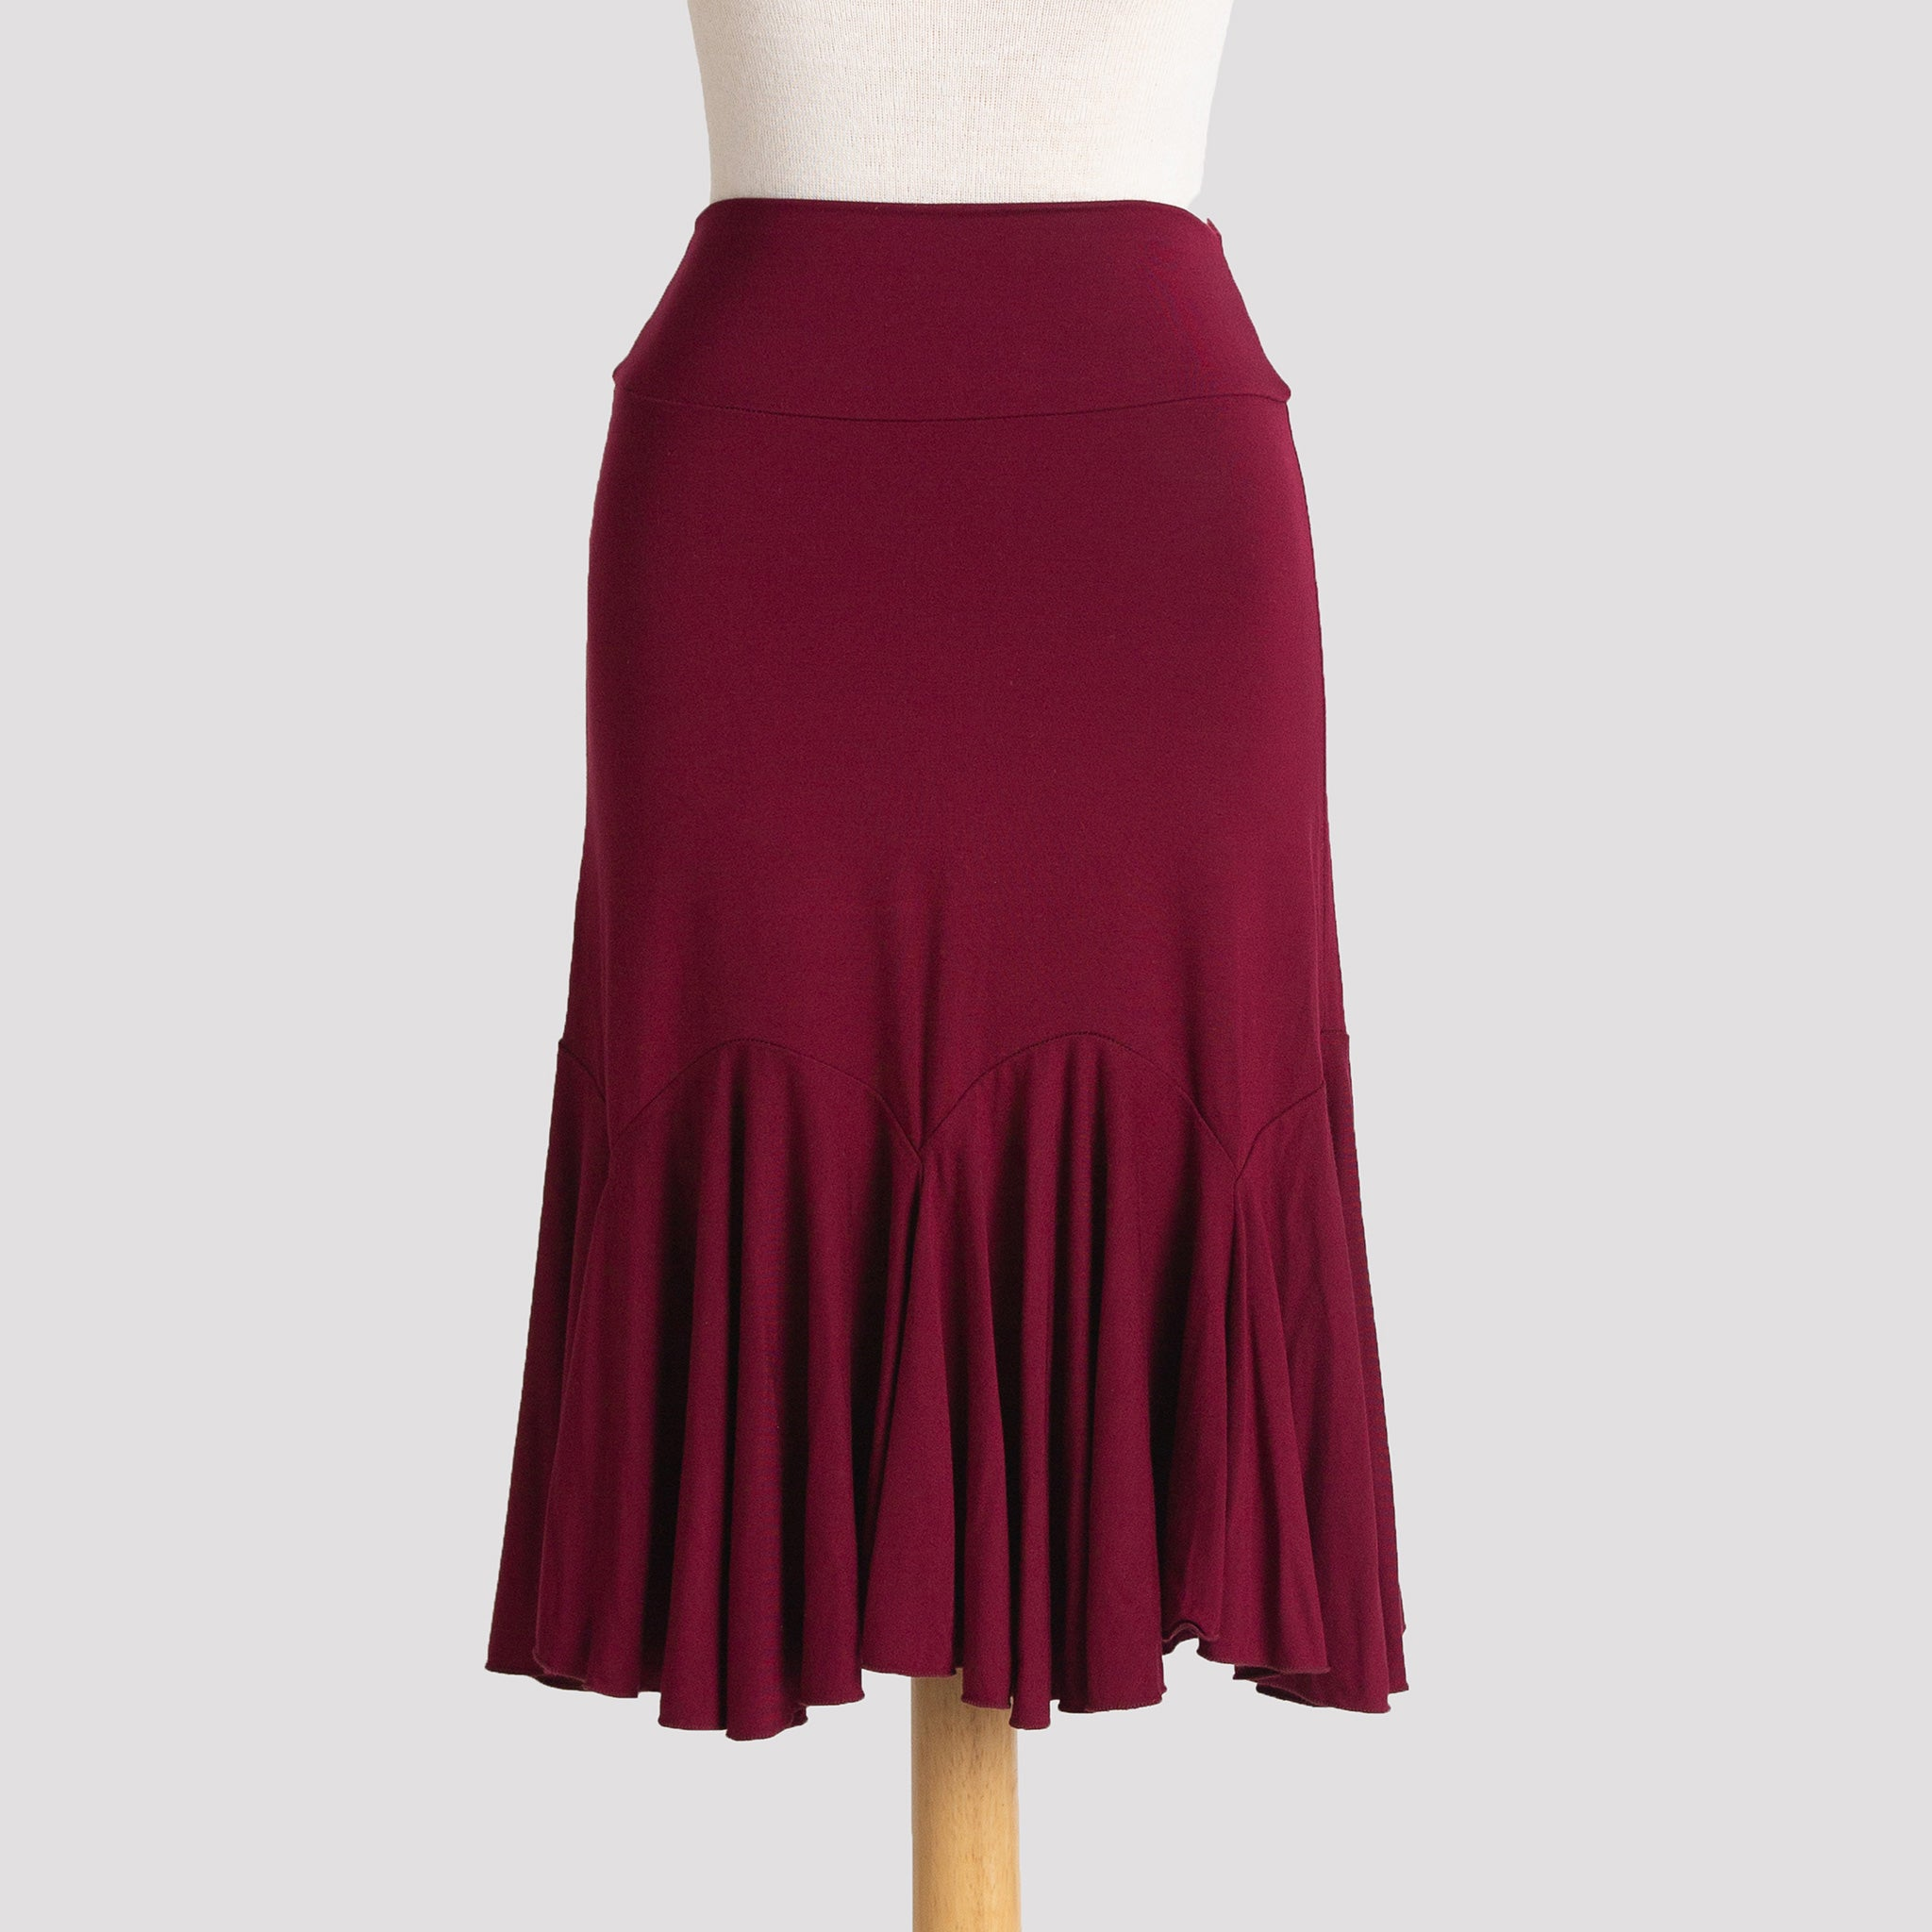 Flare Skirt in Burgundy